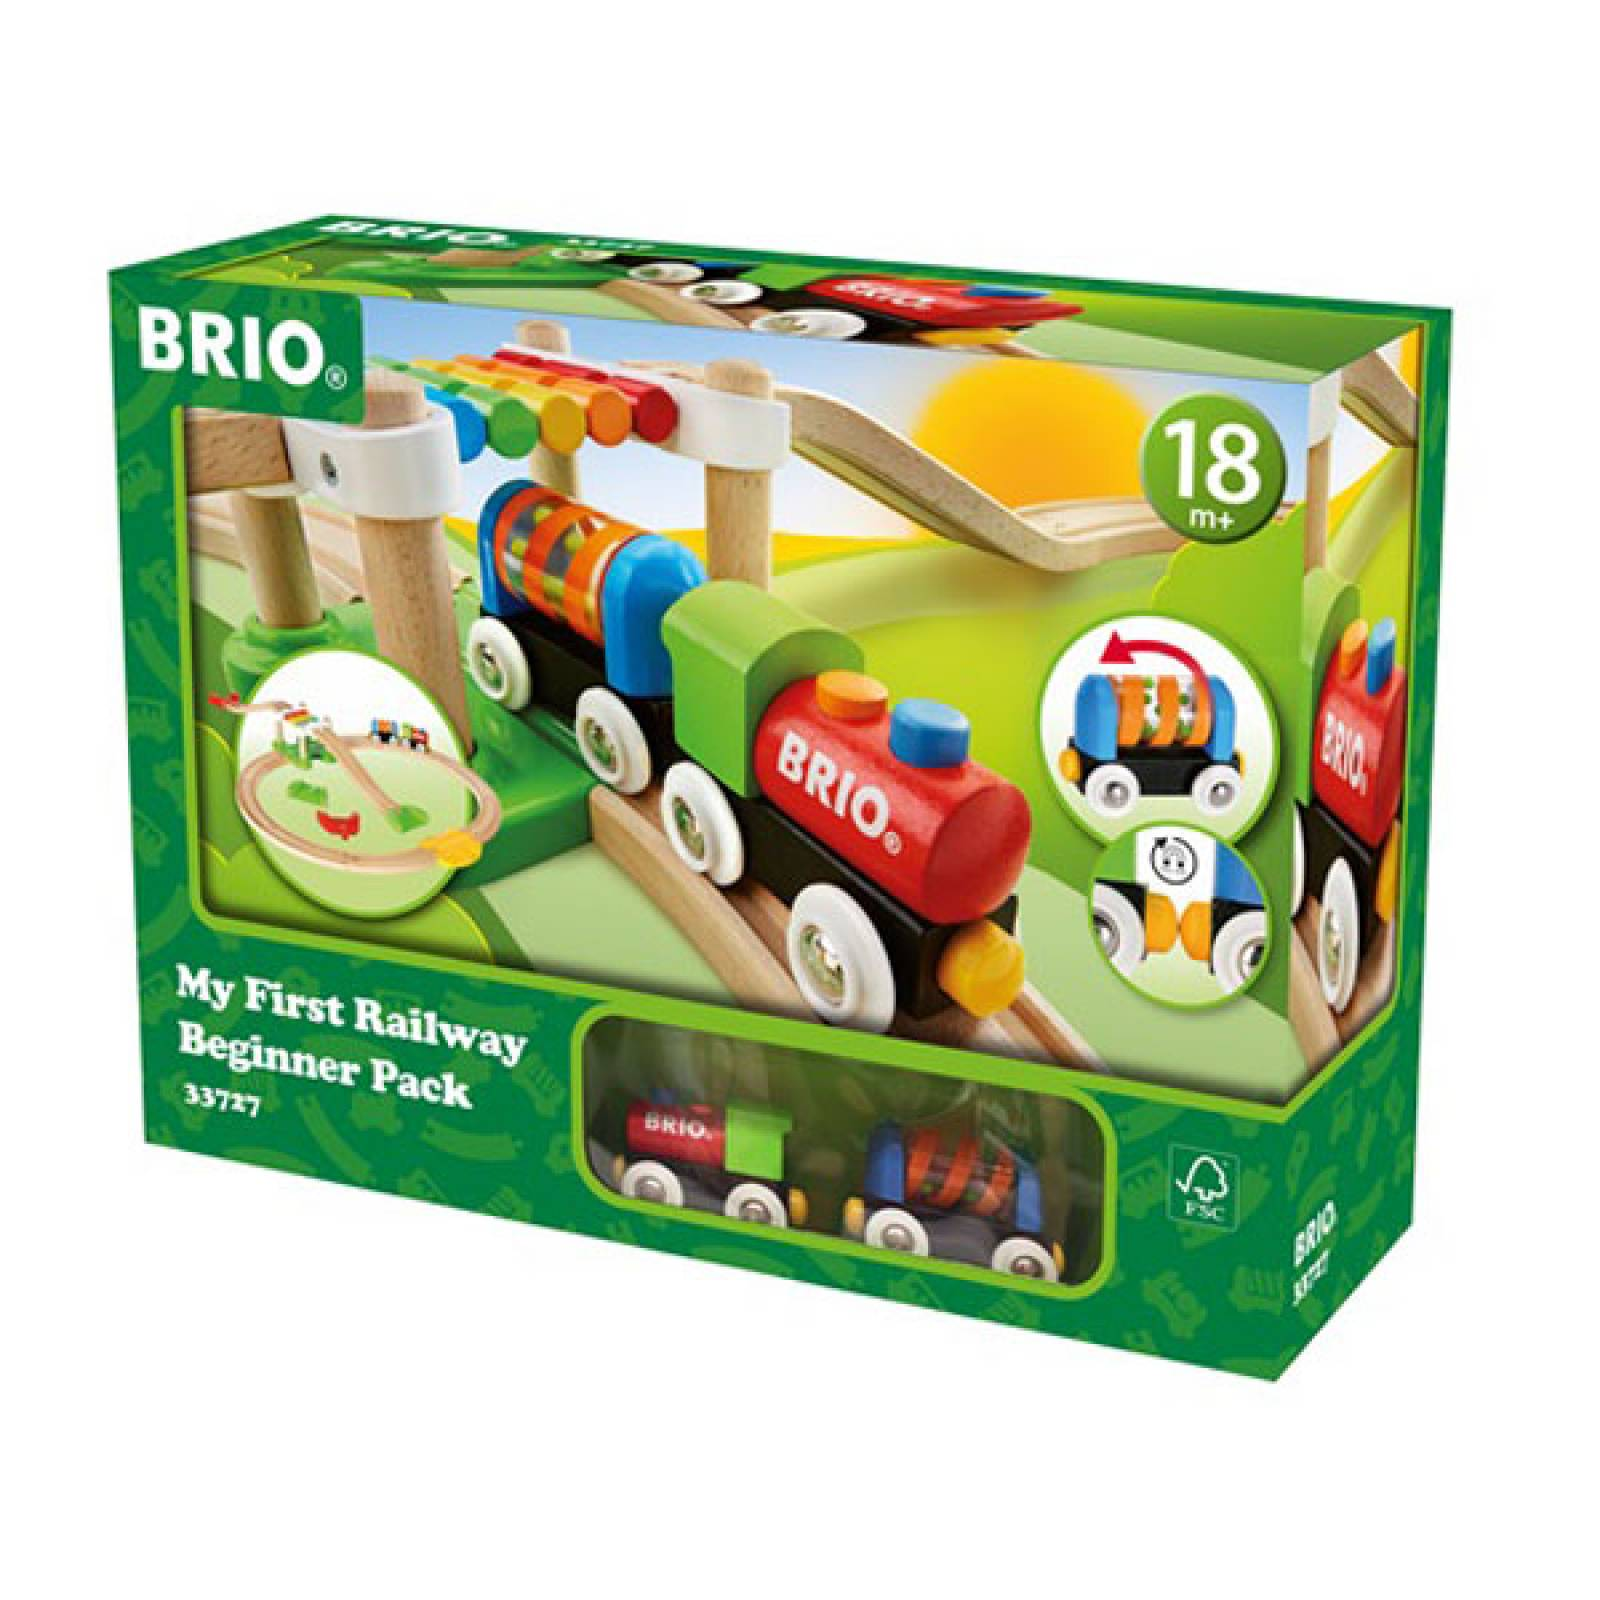 My First Railway Beginner Pack BRIO Wooden Railway Age 1.5+ thumbnails